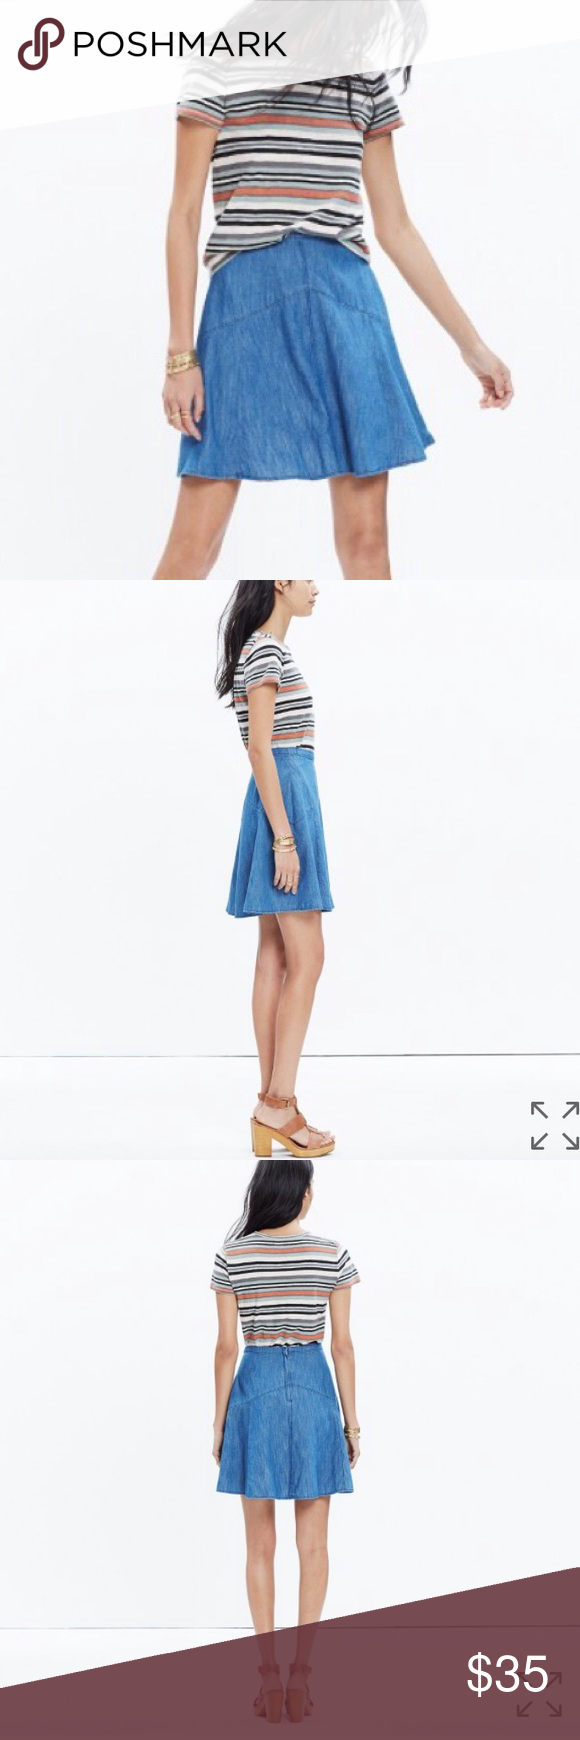 Madewell Denim Skirt New Madewell skirt! Cute and lightweight for summer or even with a chunky sweater and tall boots for winter! Madewell Skirts